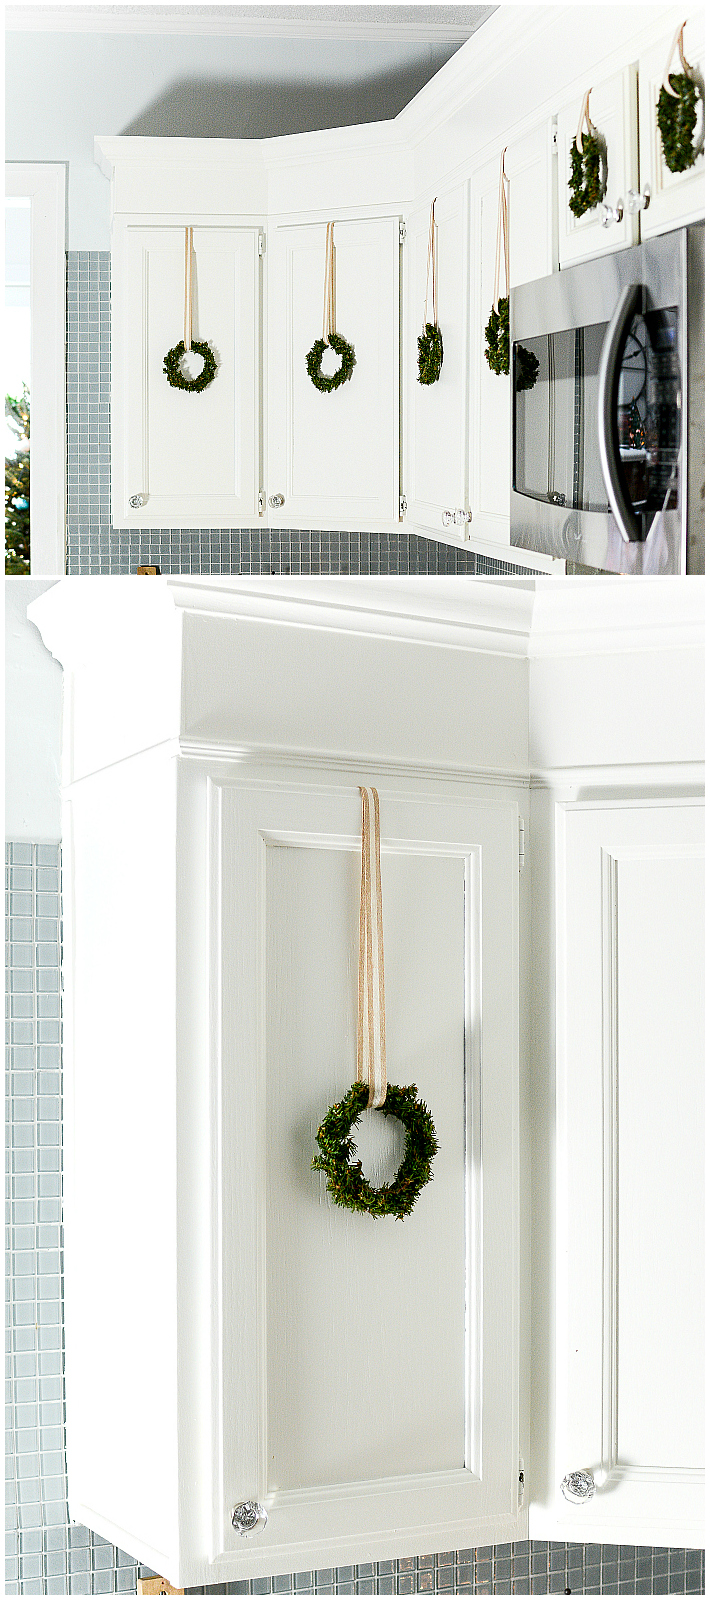 decorating-with-wreaths-indoors-mini-wreaths-on-kitchen ...